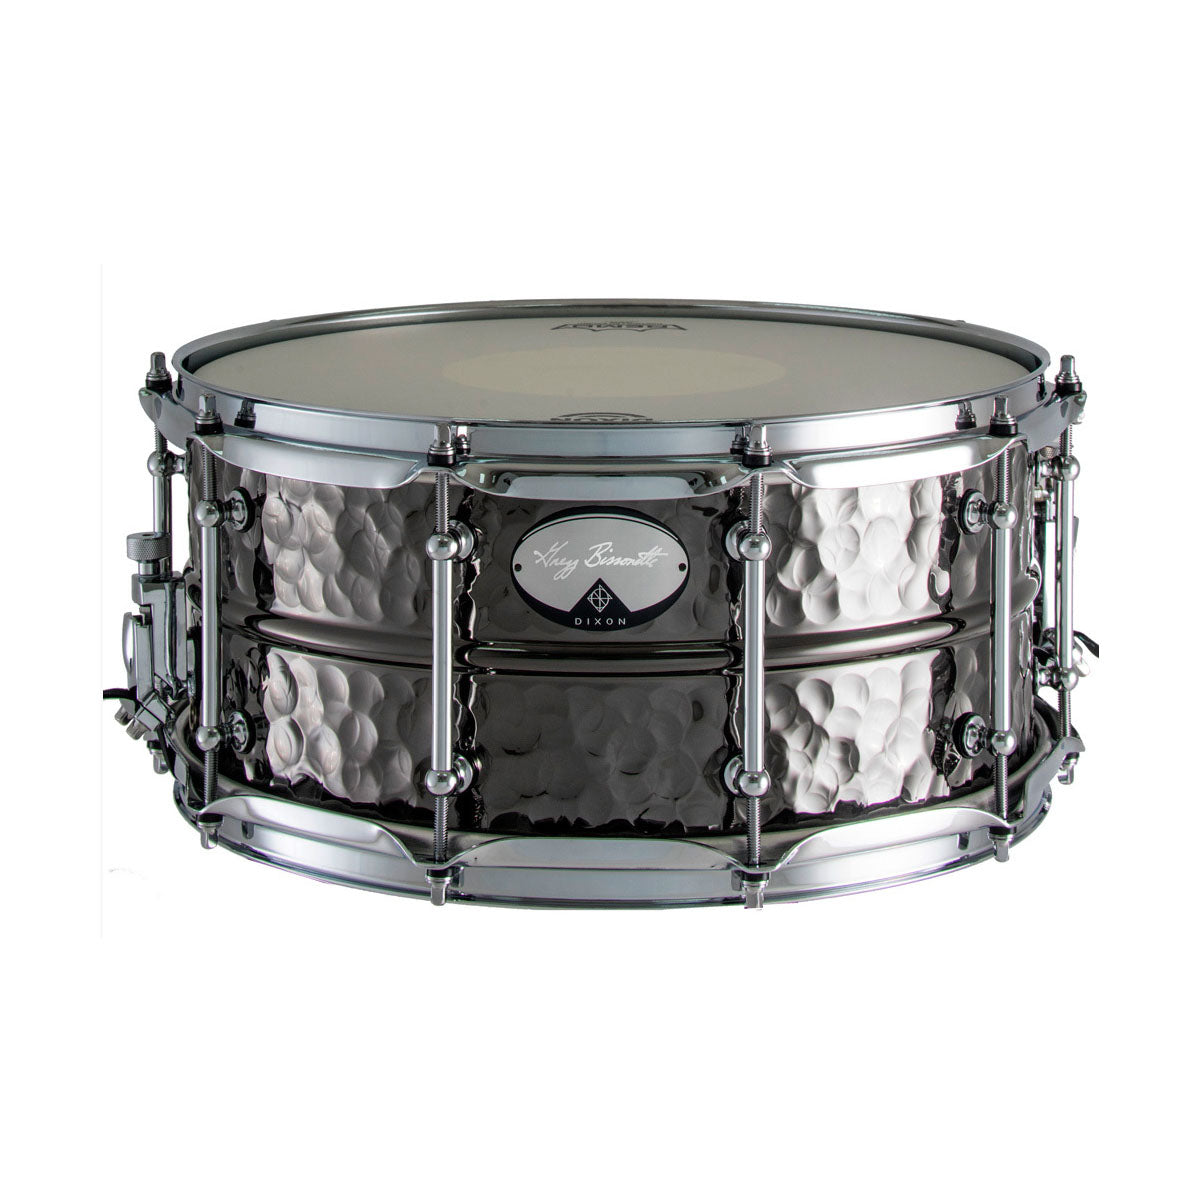 Dixon Gregg Bissonette Signature Snare Drum Hammered Brass Black Nickel - 14x6.5inch - PDSAN654GBB